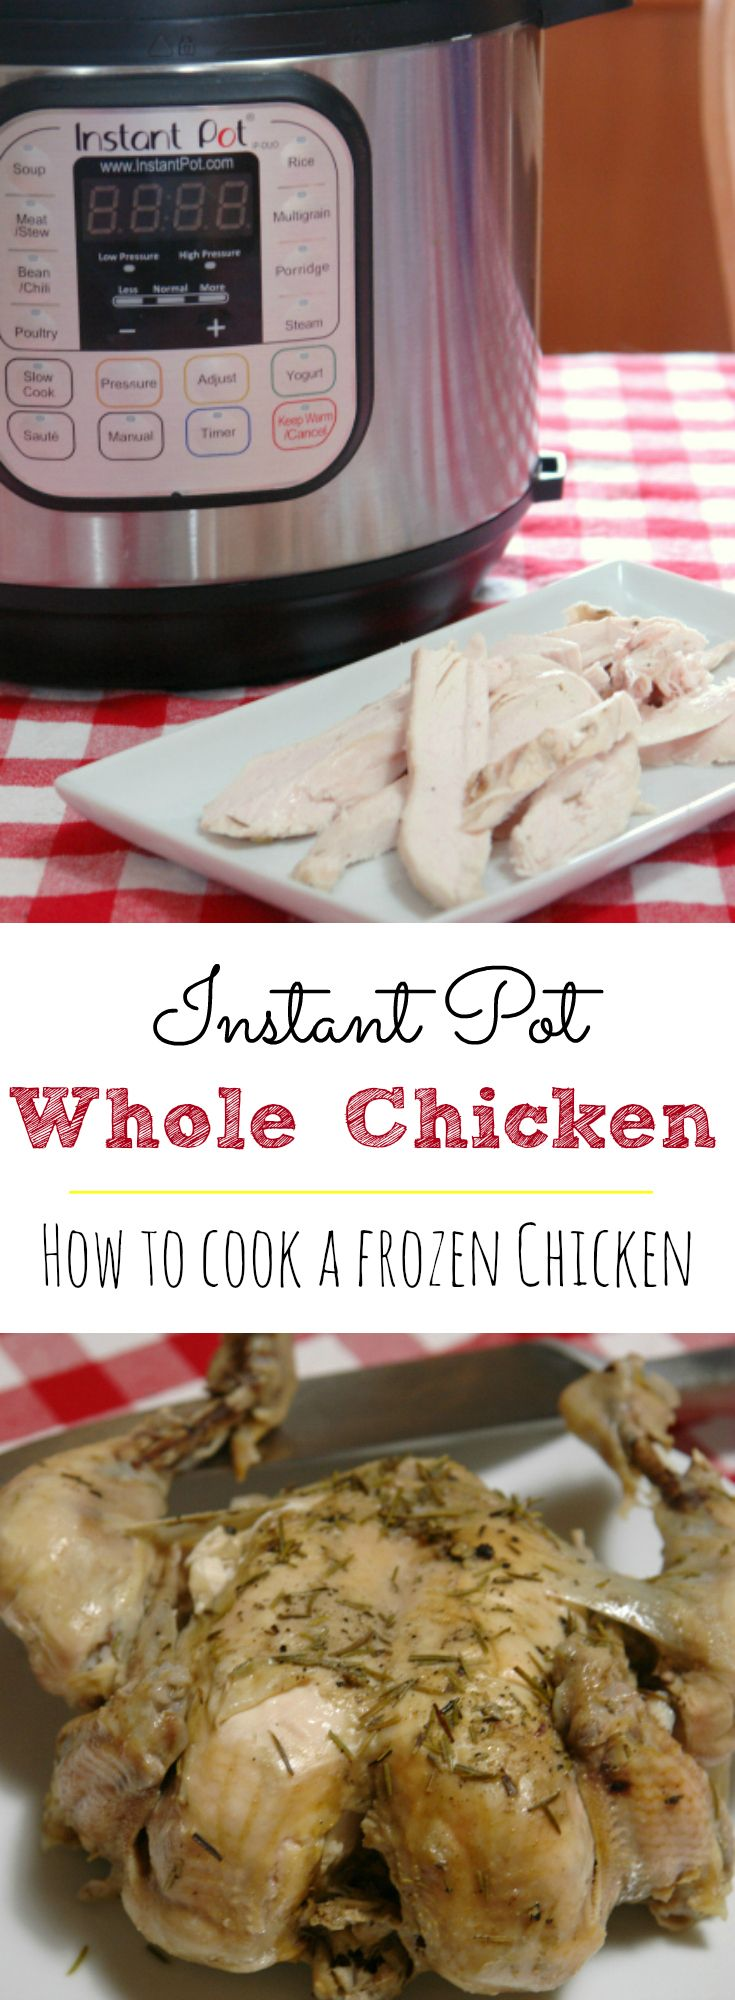 Instant Pot Whole Frozen Chicken  Recipe  Food -6217